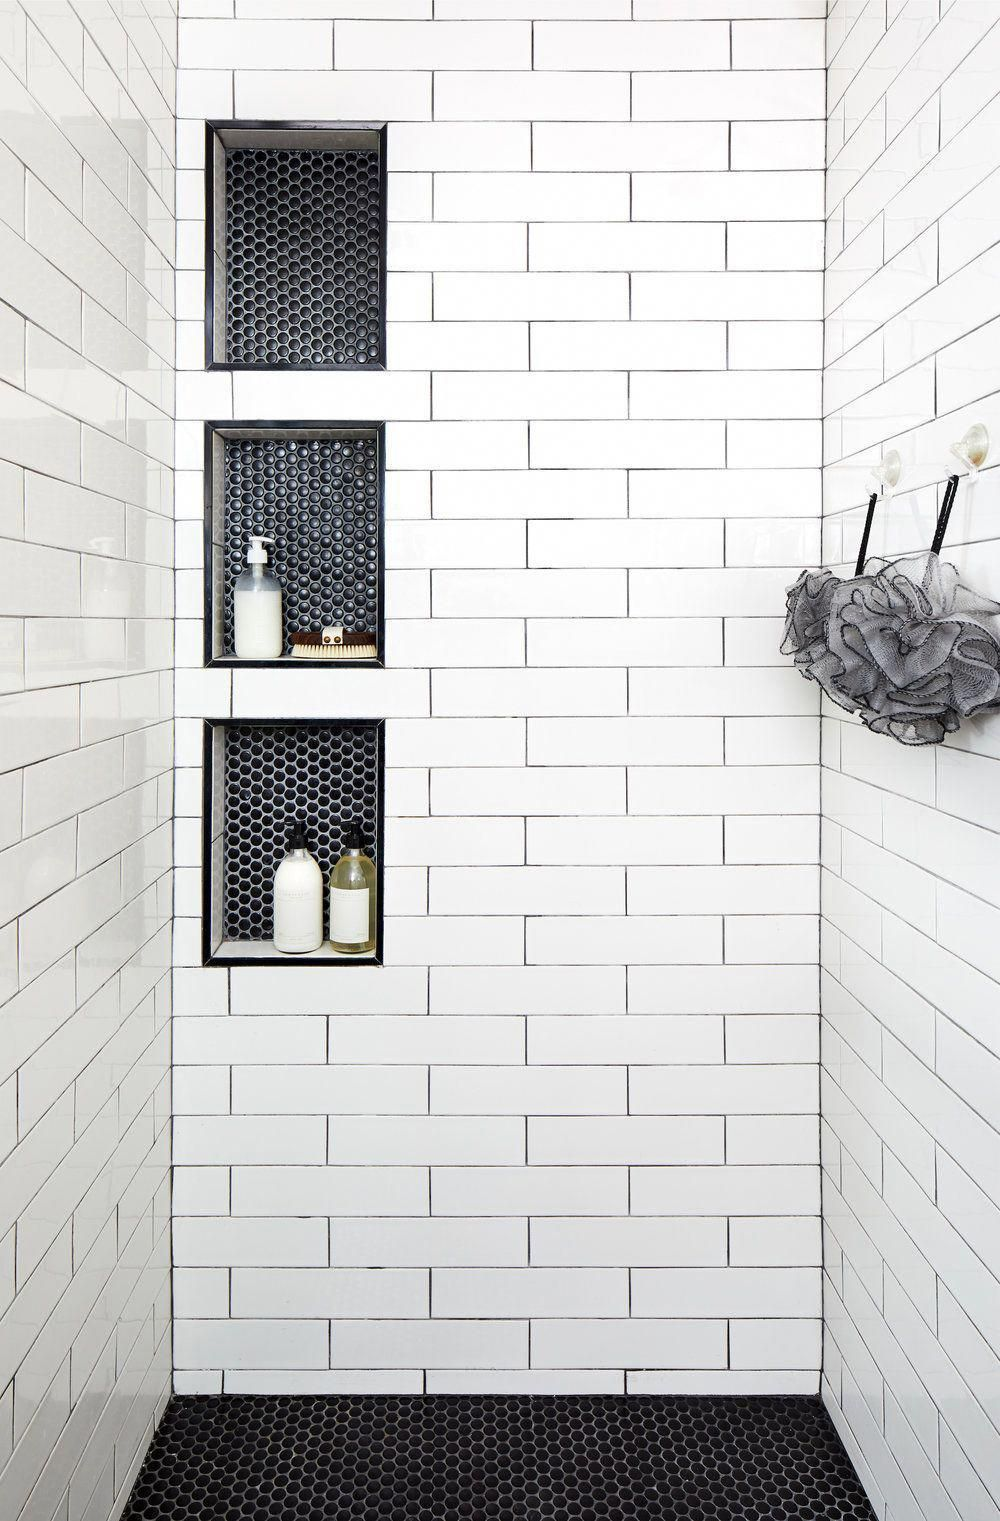 60 Bathrooms Black And White Decorated Beautiful Pictures In 2020 Best Bathroom Tiles Bathroom Design Small Floor Tile Design